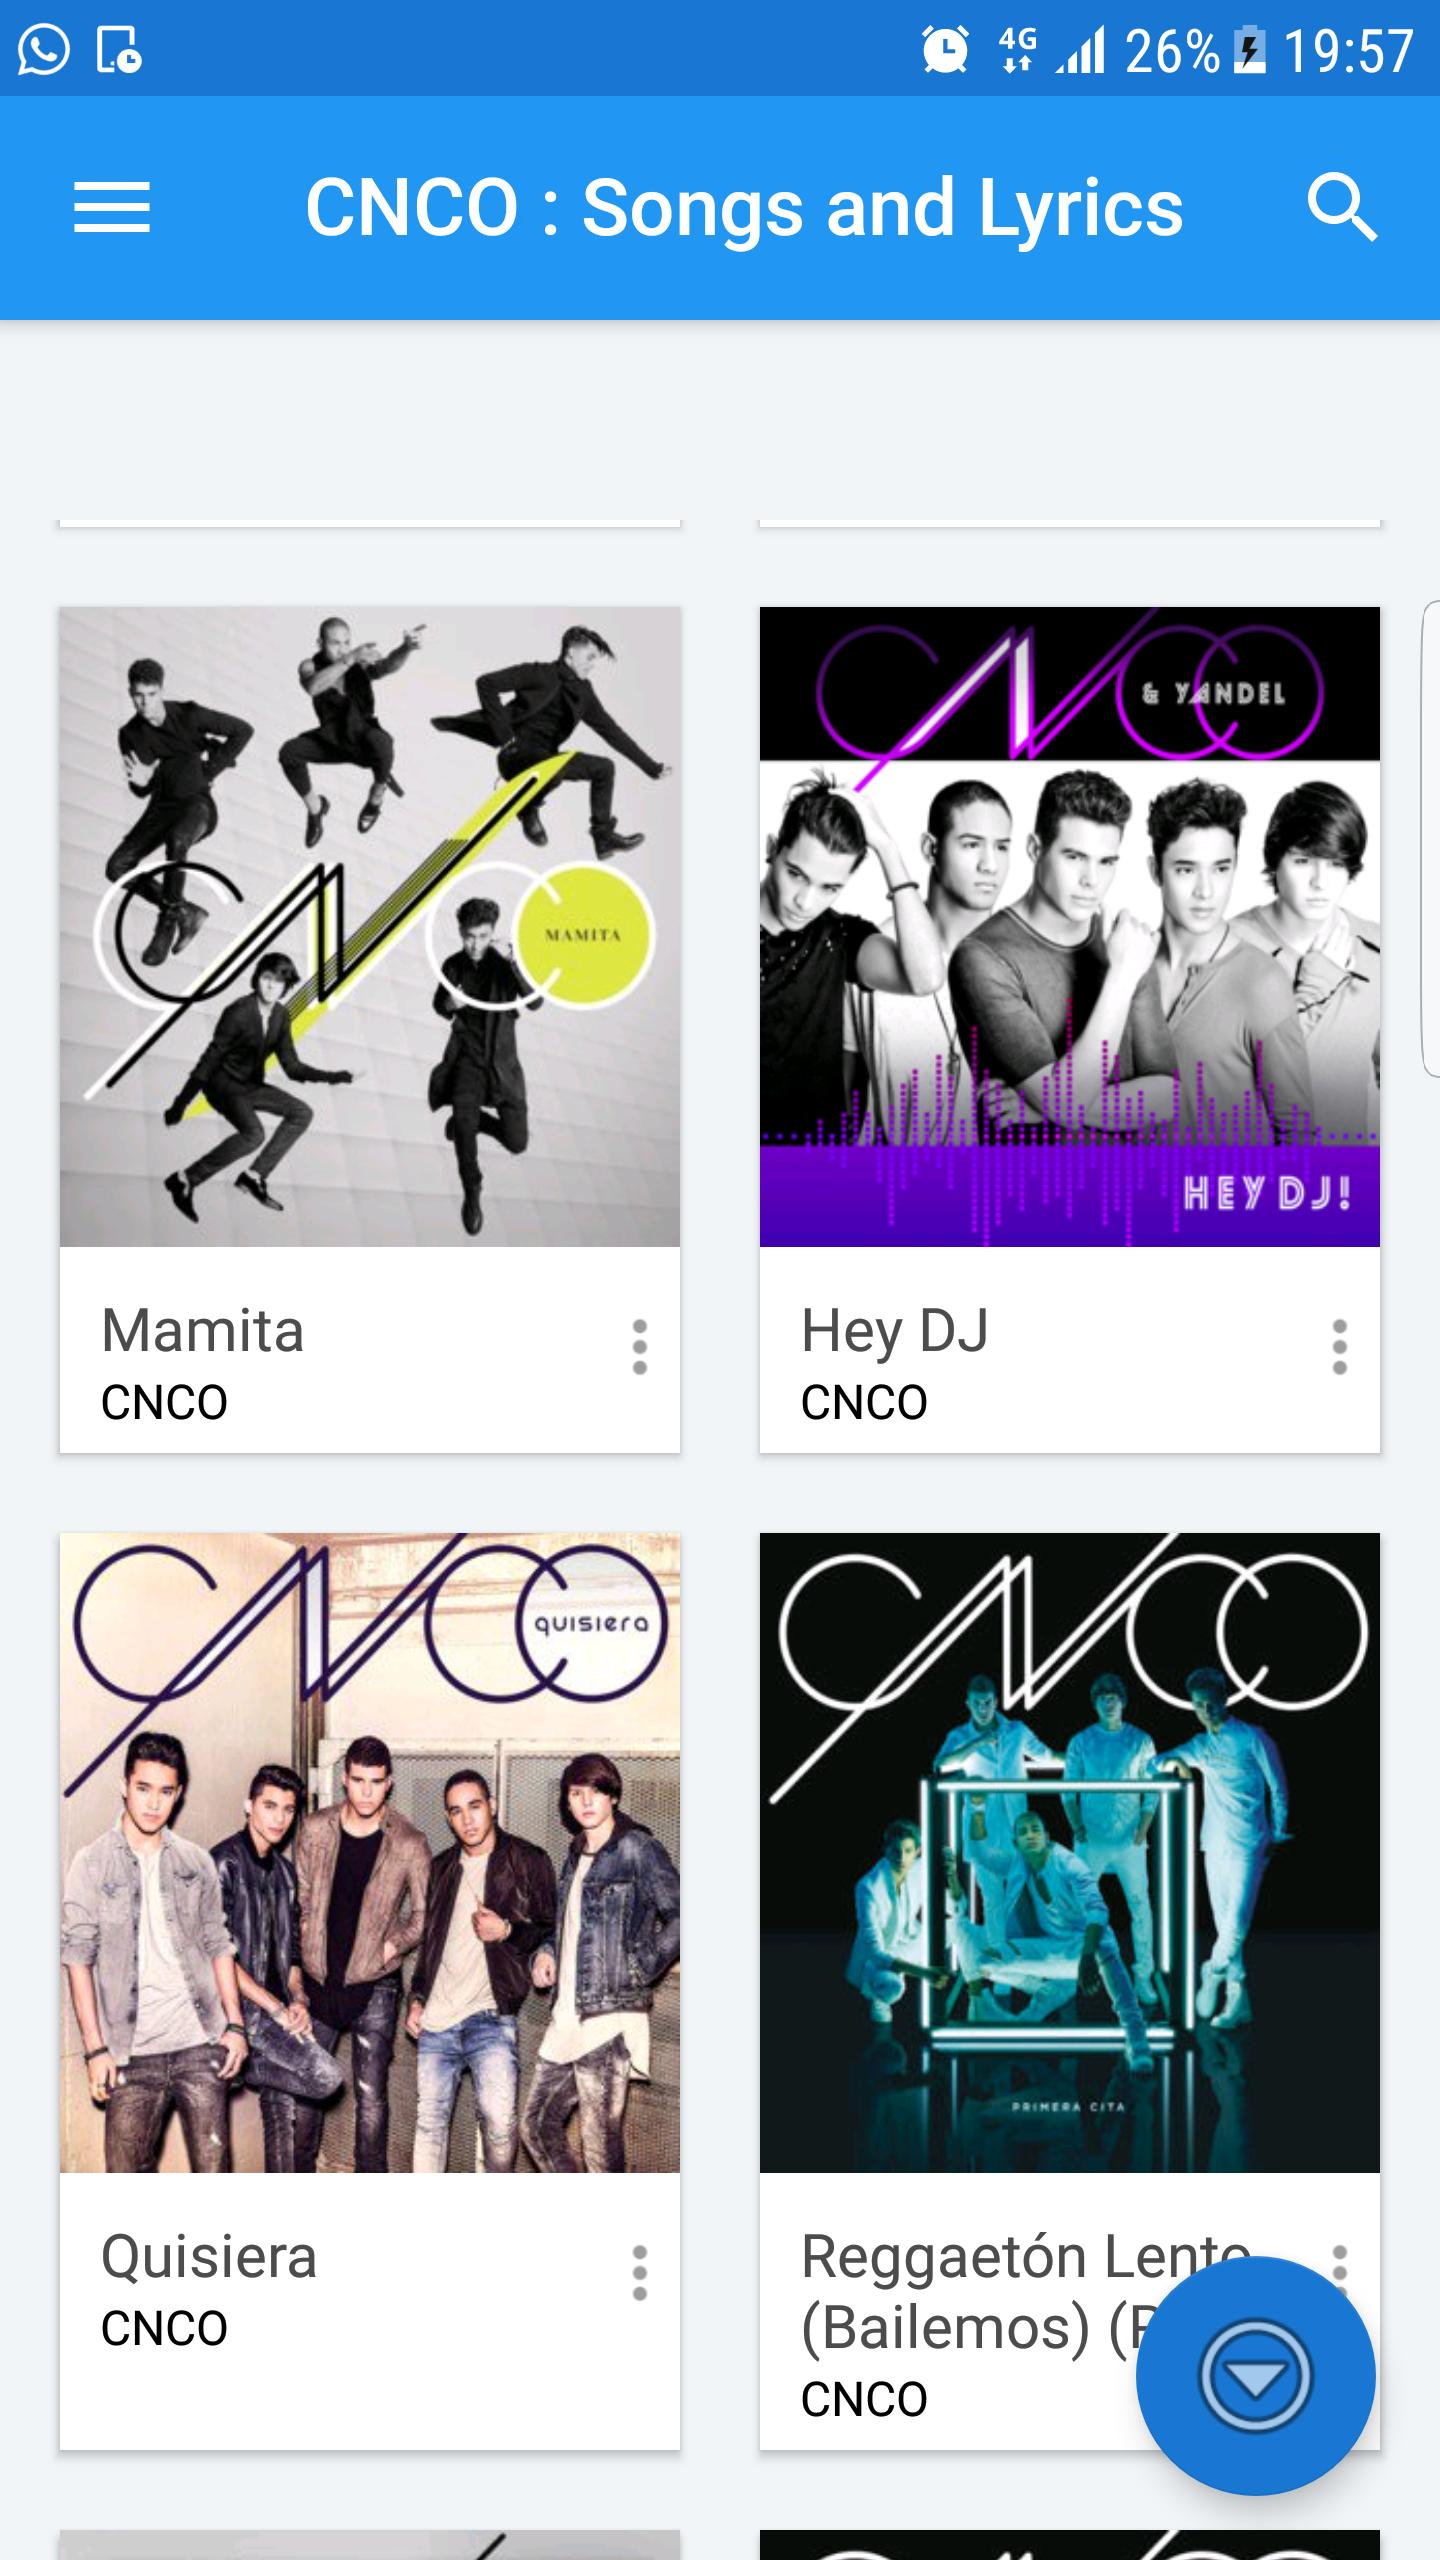 CNCO music & lyrics app for Android - APK Download